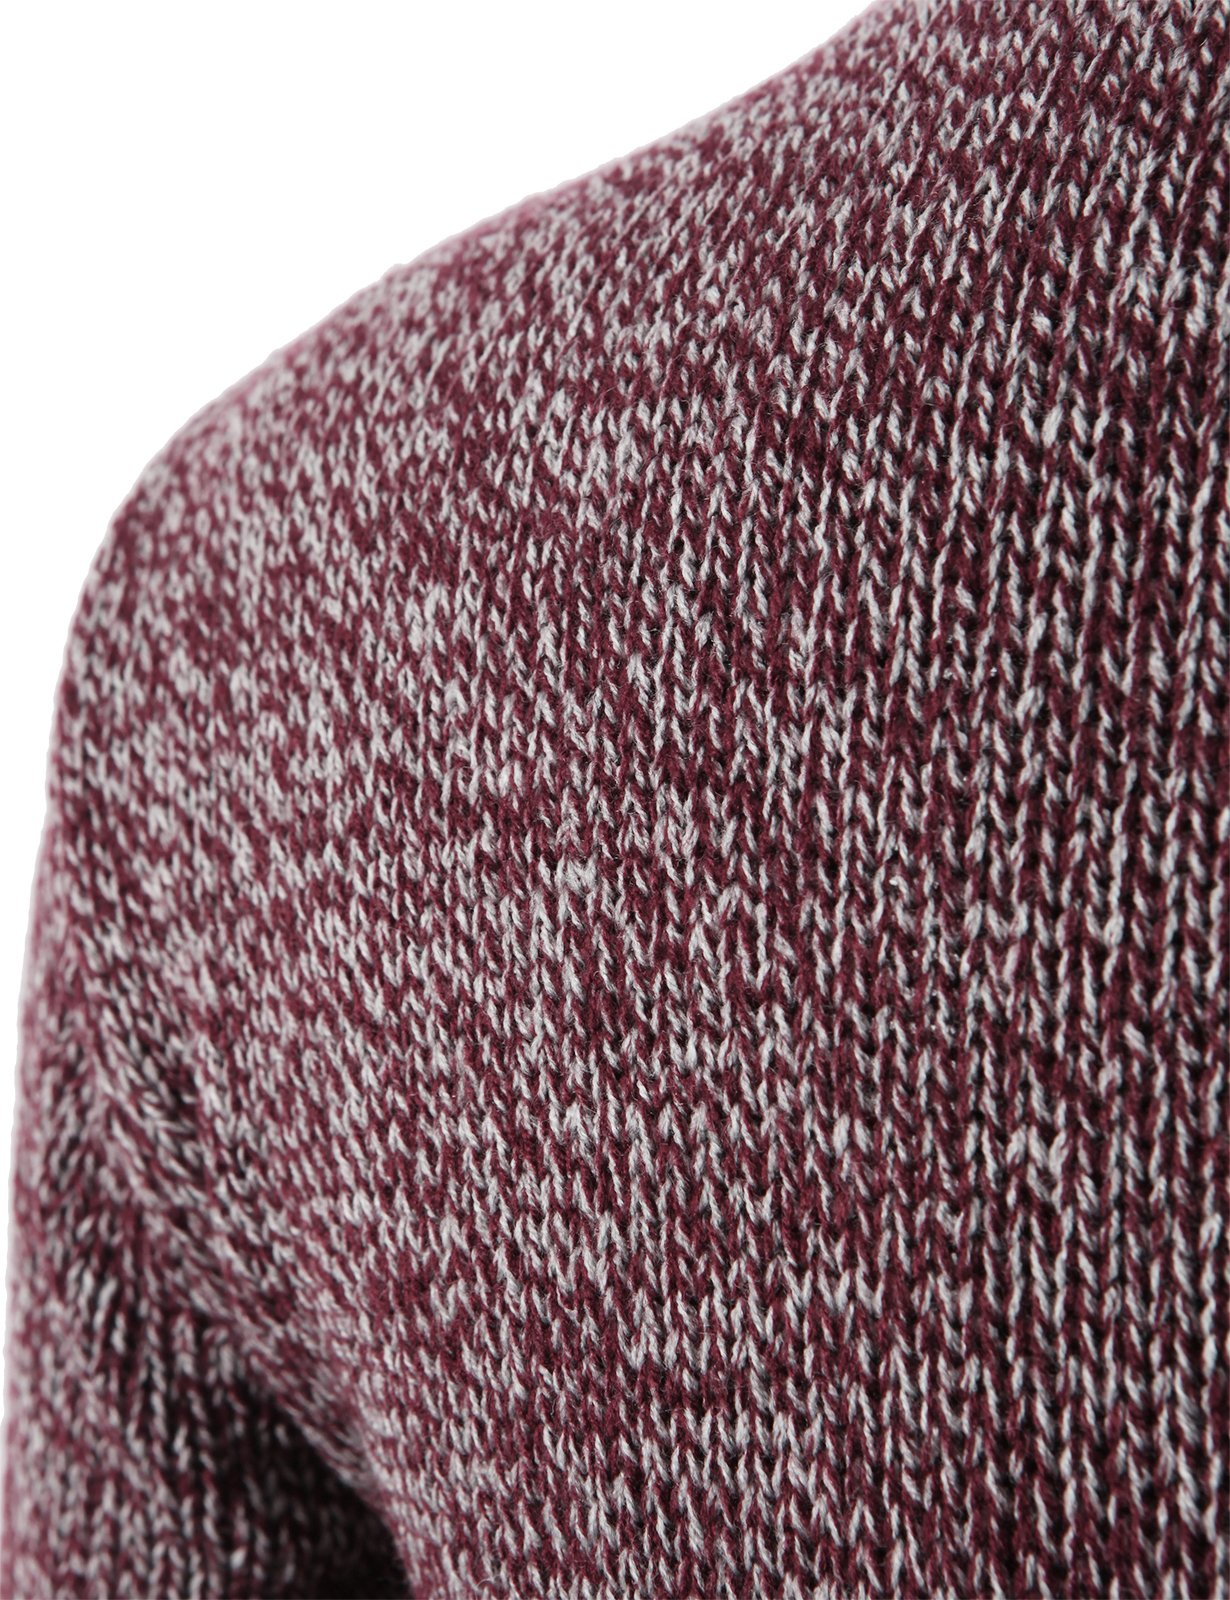 H2H Mens Slim Fit Basic Ribbed Thermal Turtleneck Pullover Sweaters Maroon US M/Asia L (KMOSWL0122) by H2H (Image #4)